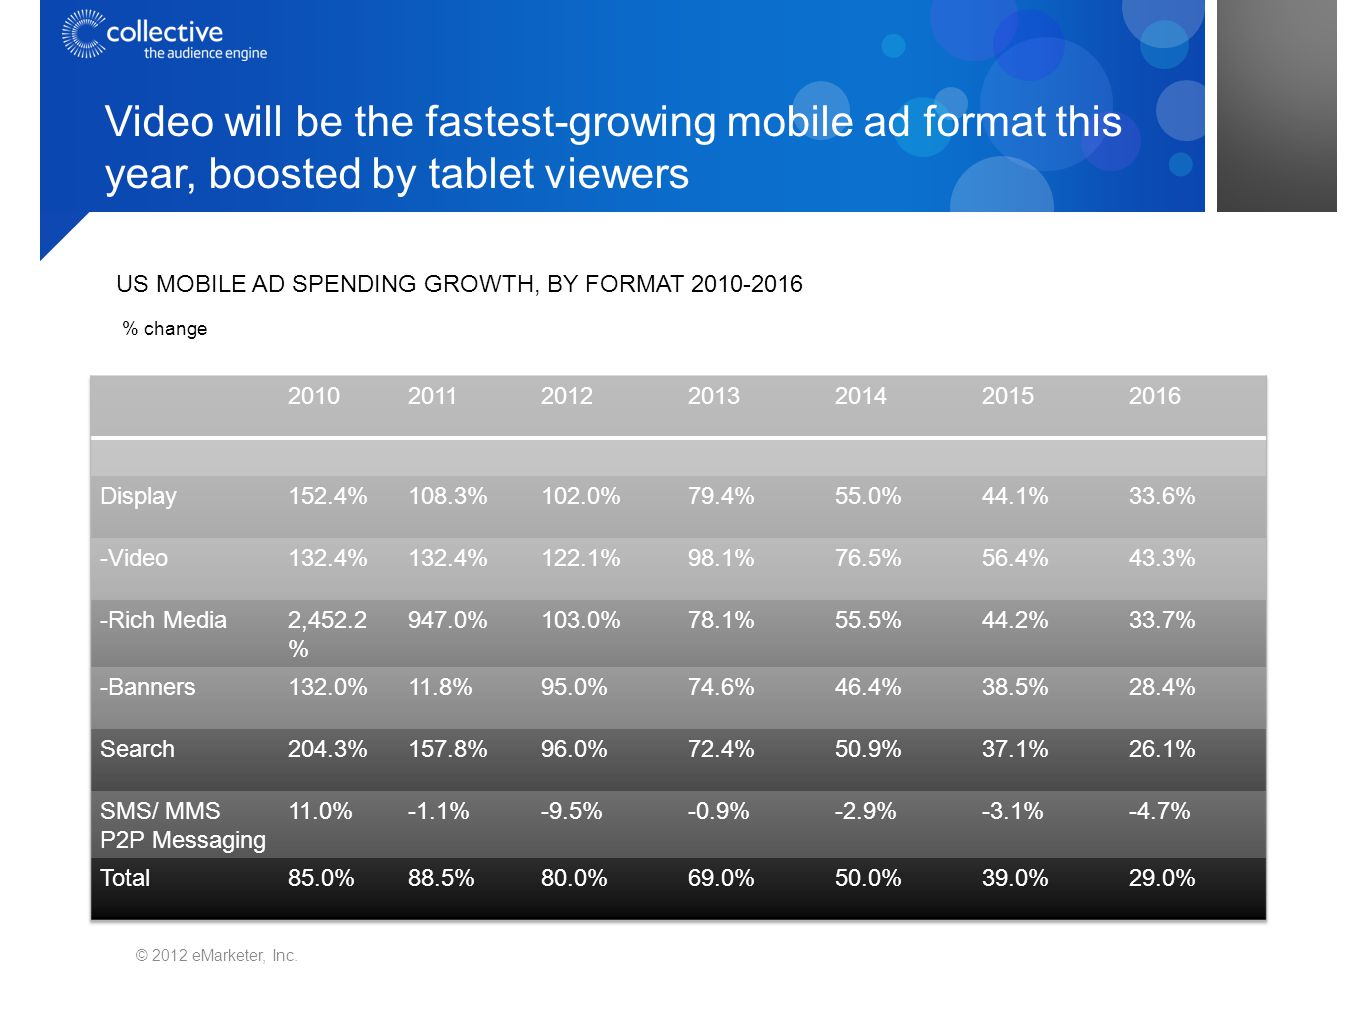 Video will be the fastest-growing mobile ad format this year, boosted by tablet viewers © 2012 eMarketer, Inc.